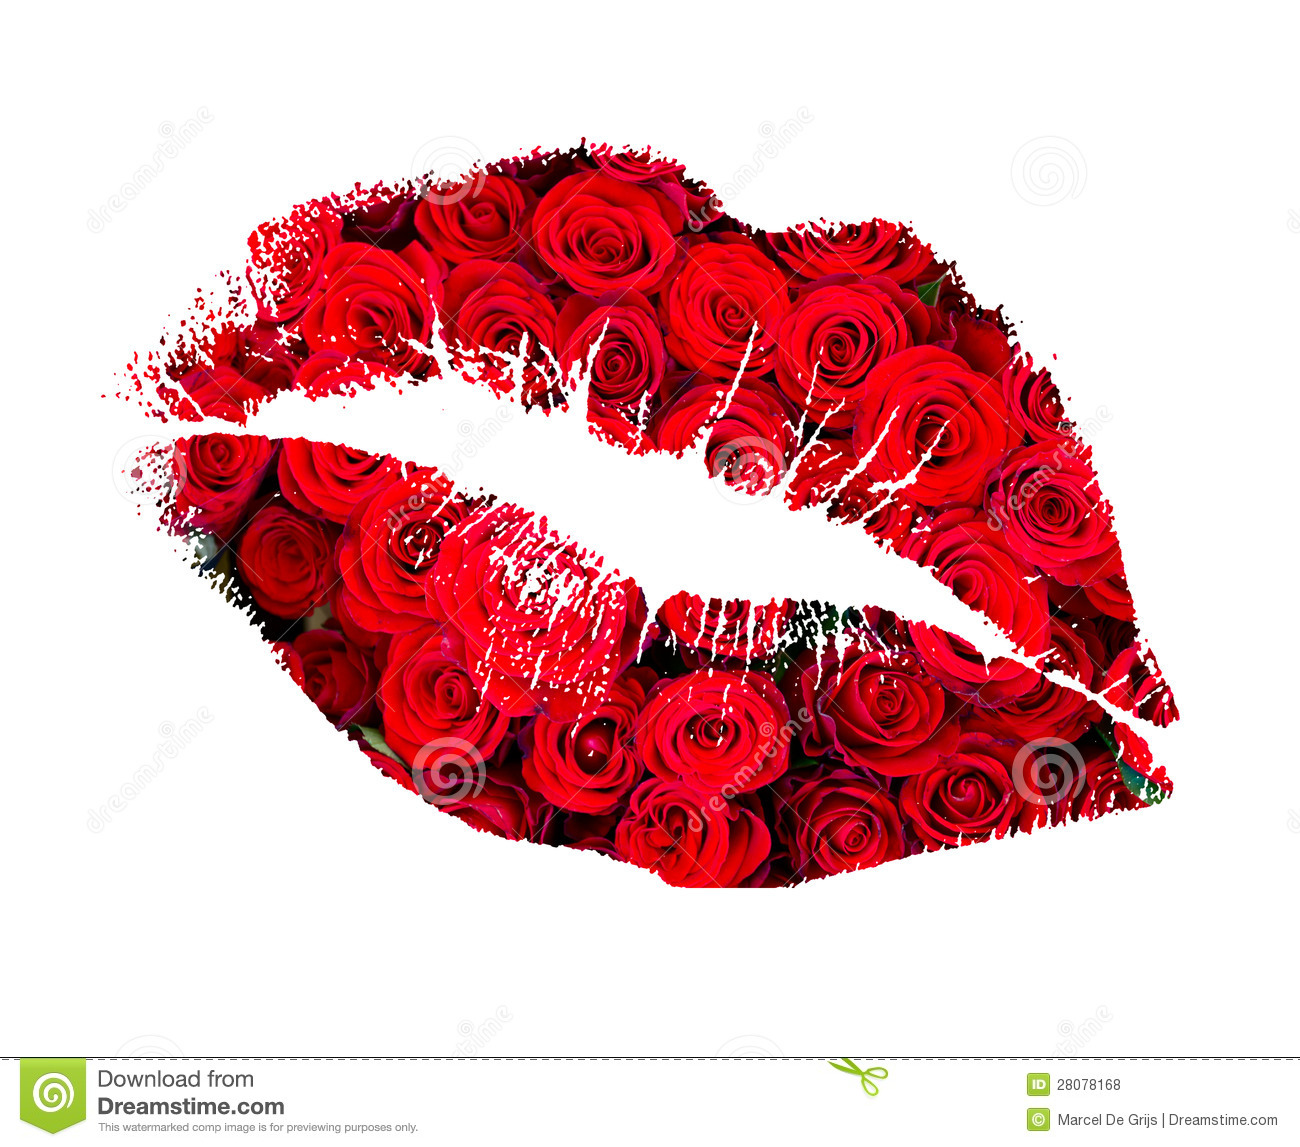 Kiss from a rose royalty free stock photos image 28078168